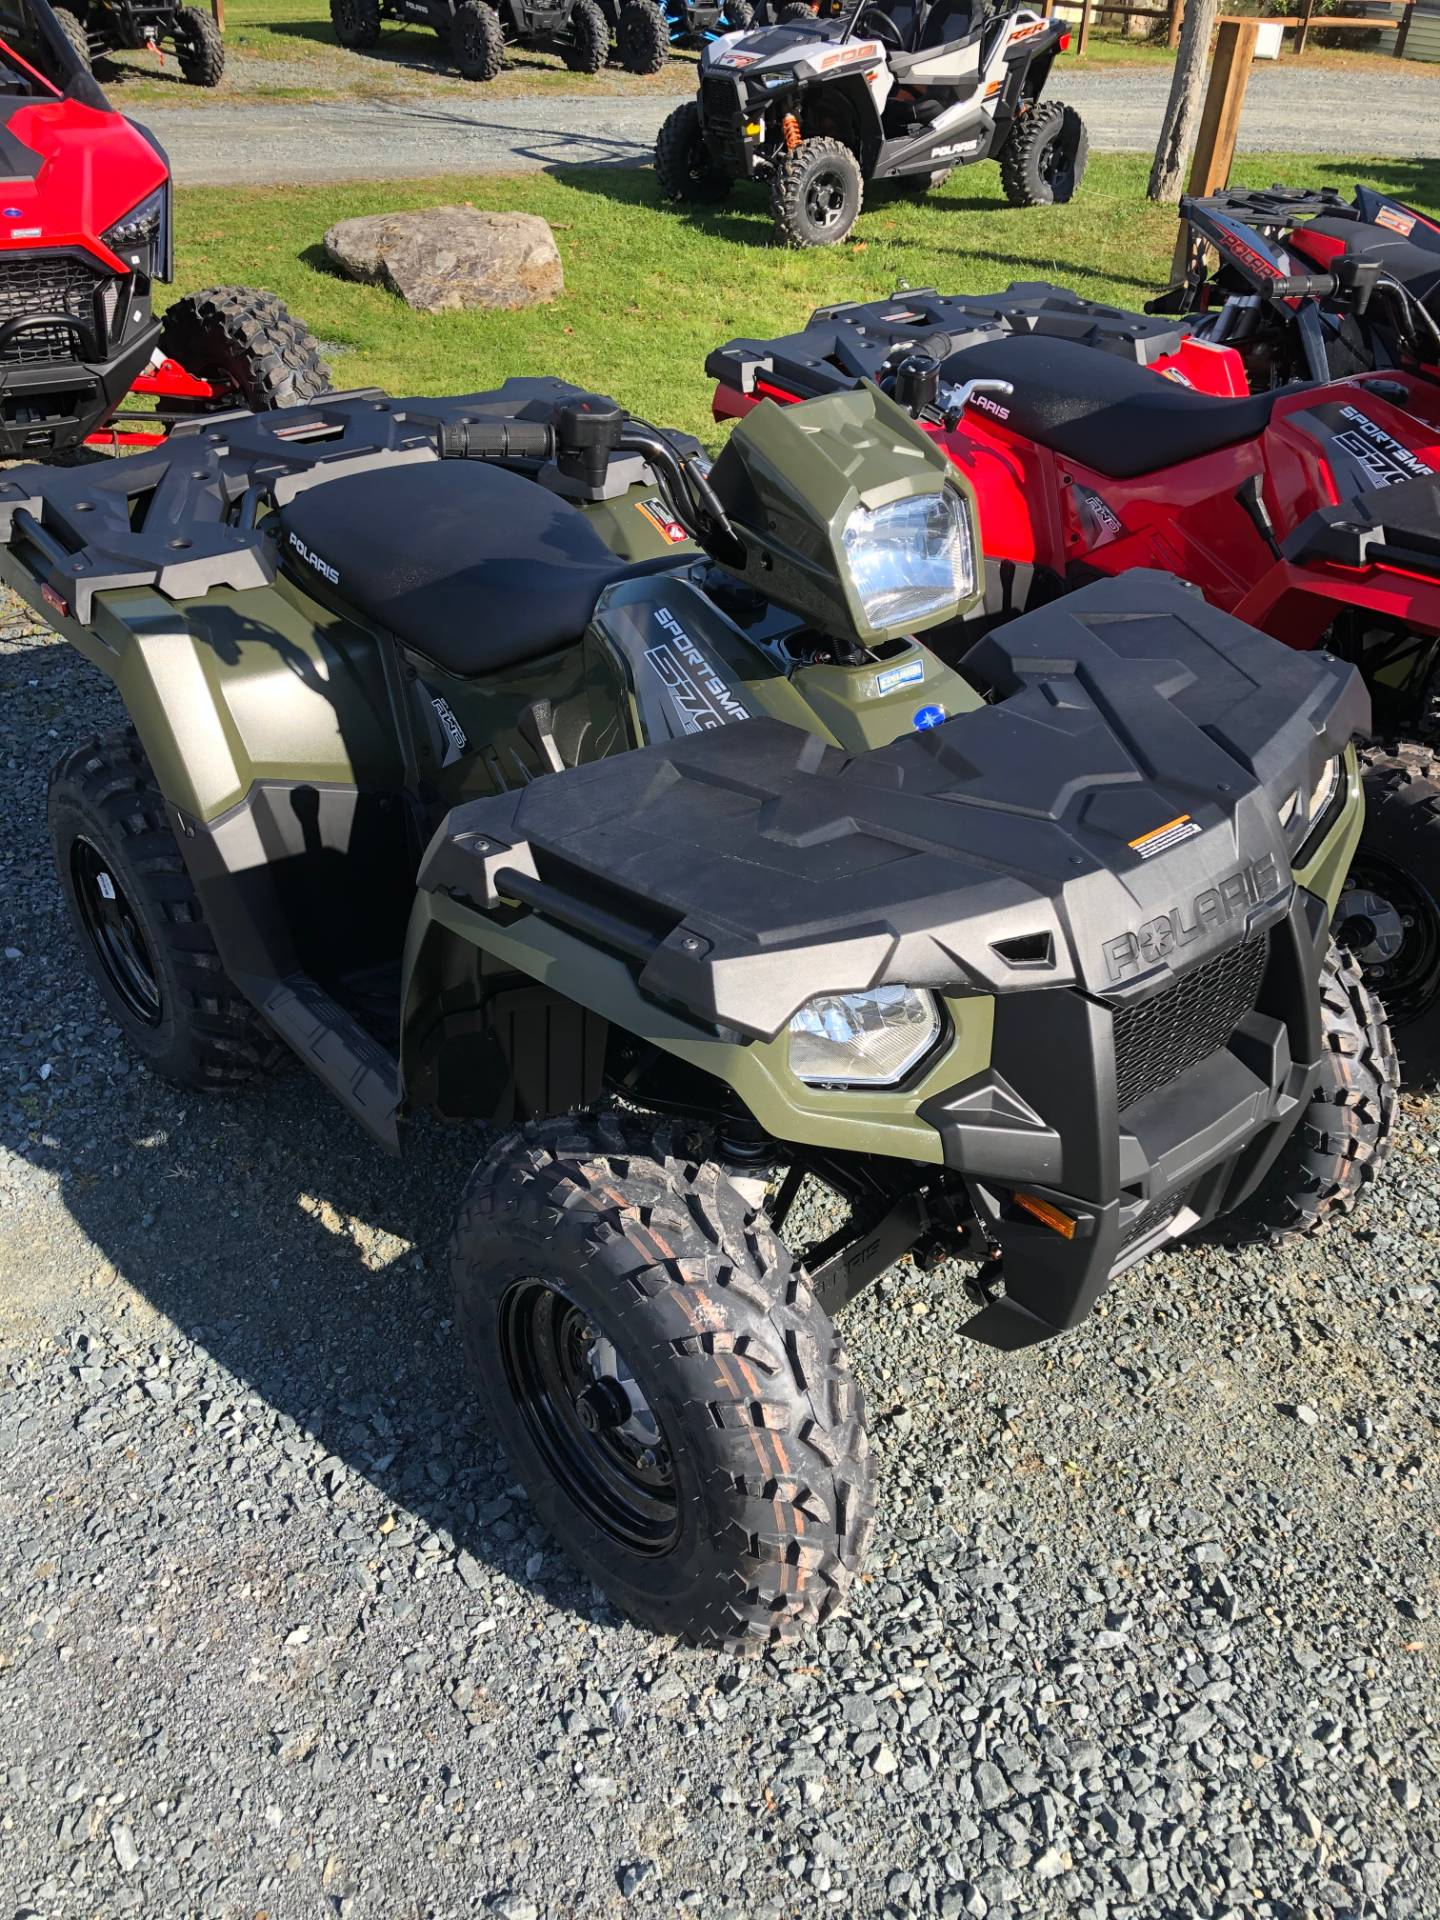 2020 Polaris Sportsman 570 in Troy, New York - Photo 1